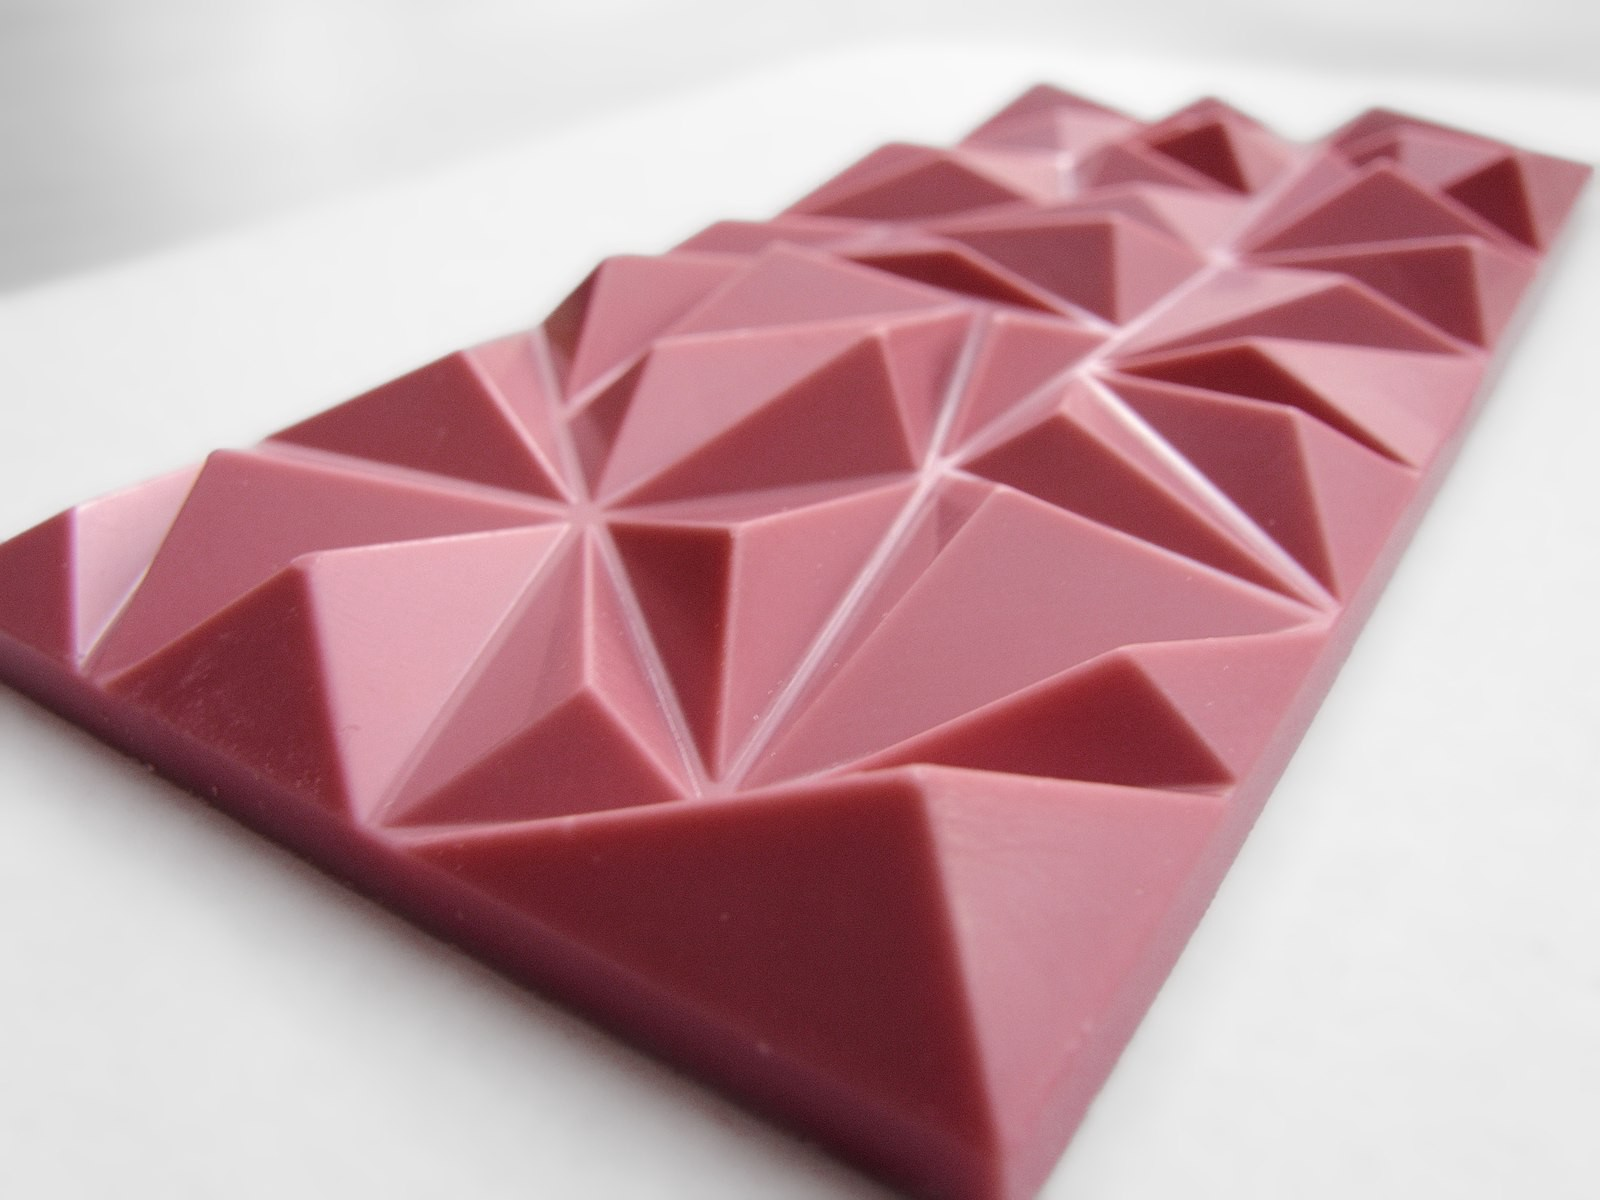 A thin bar of ruby chocolate. Instead of being scored into squares/rectangles, it's in three-dimensional triangle shapes.